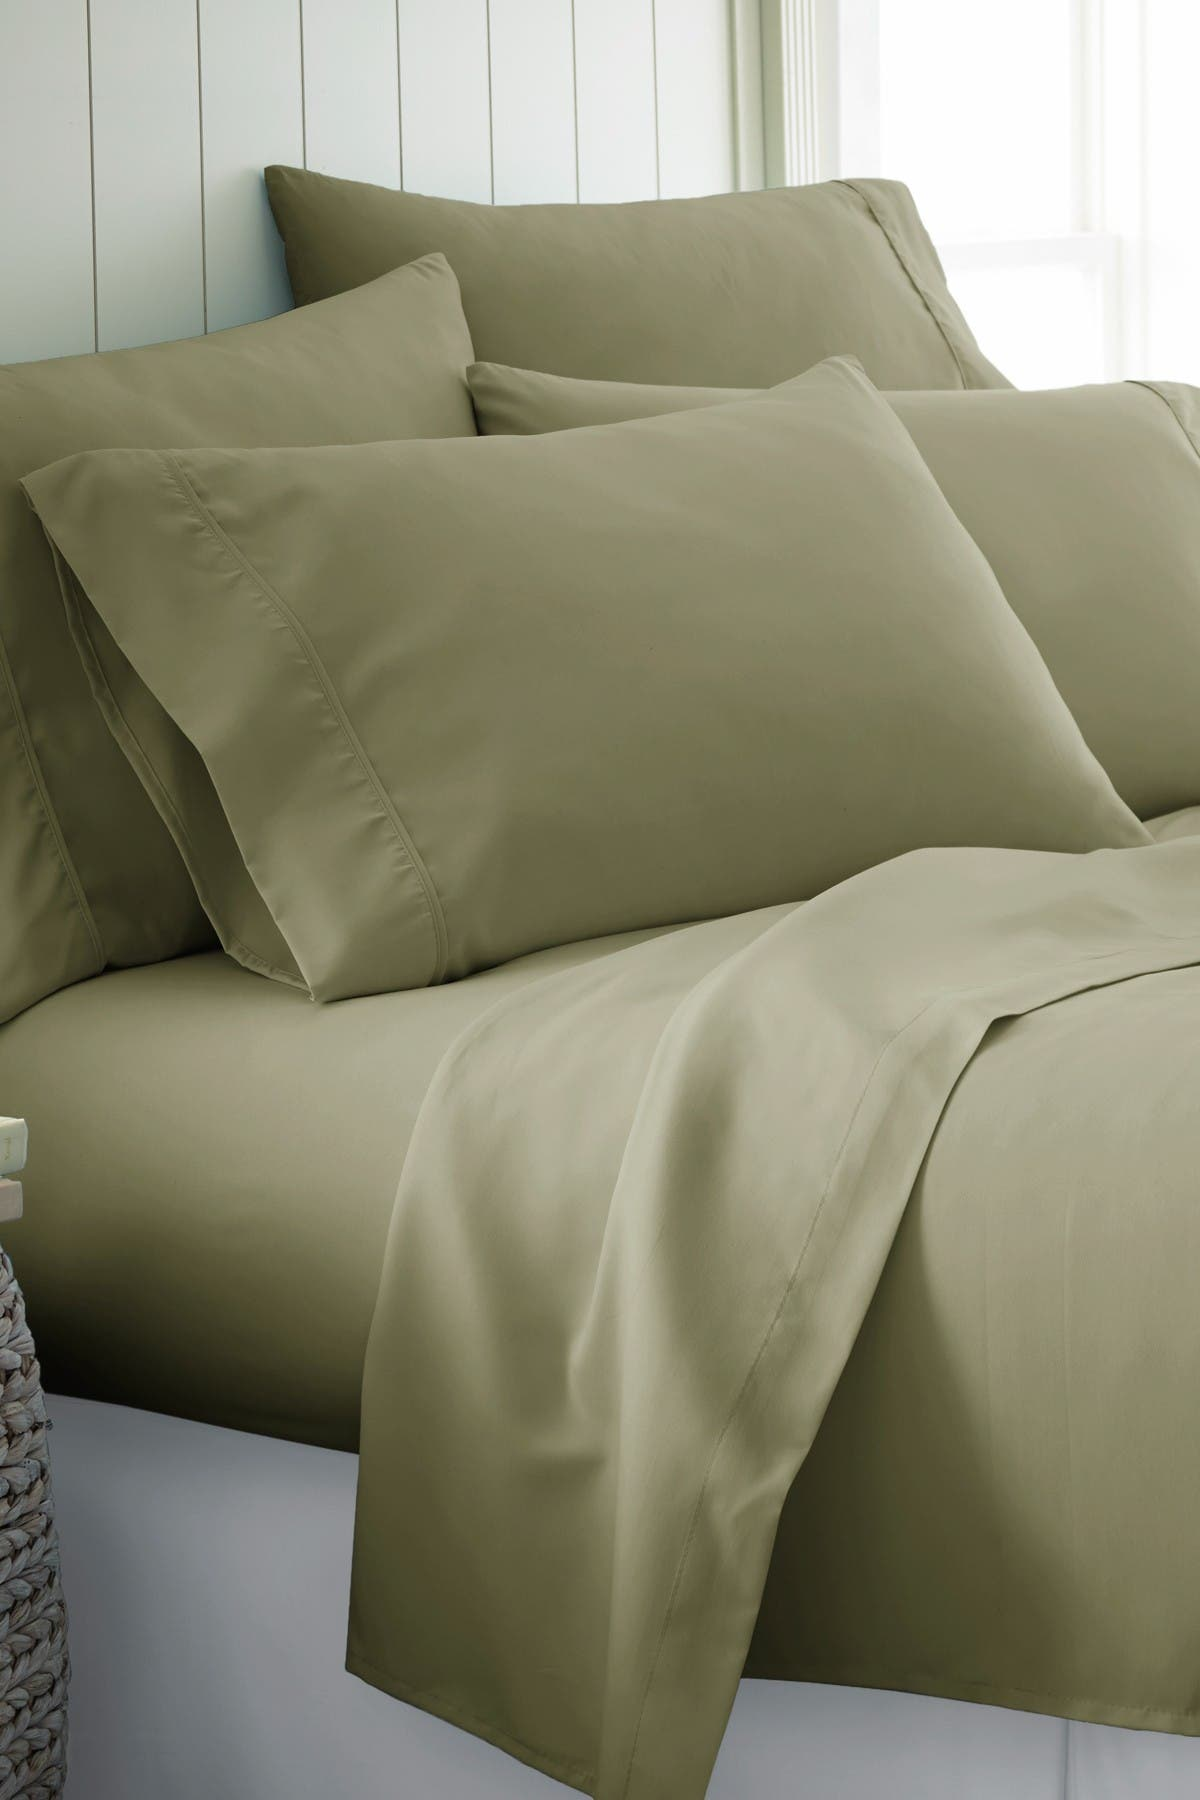 Image of IENJOY HOME King Hotel Collection Premium Ultra Soft 6-Piece Bed Sheet Set - Sage